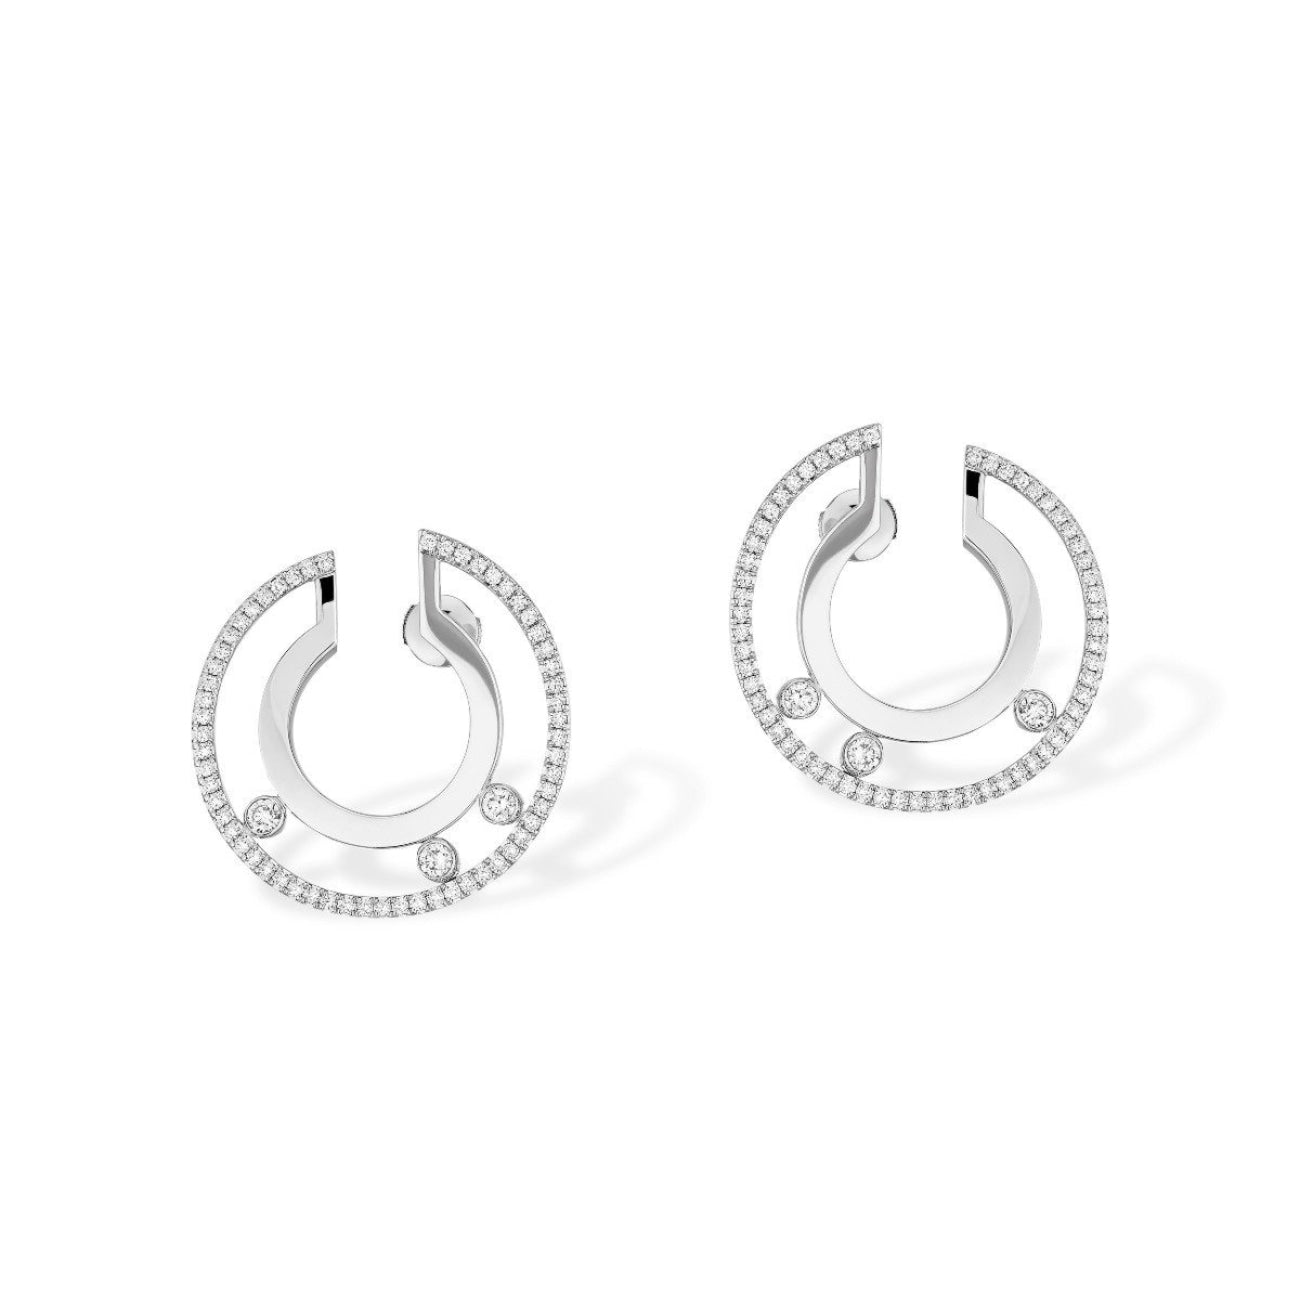 Messika Jewelry - Move Romane Small Hoop | Manfredi Jewels